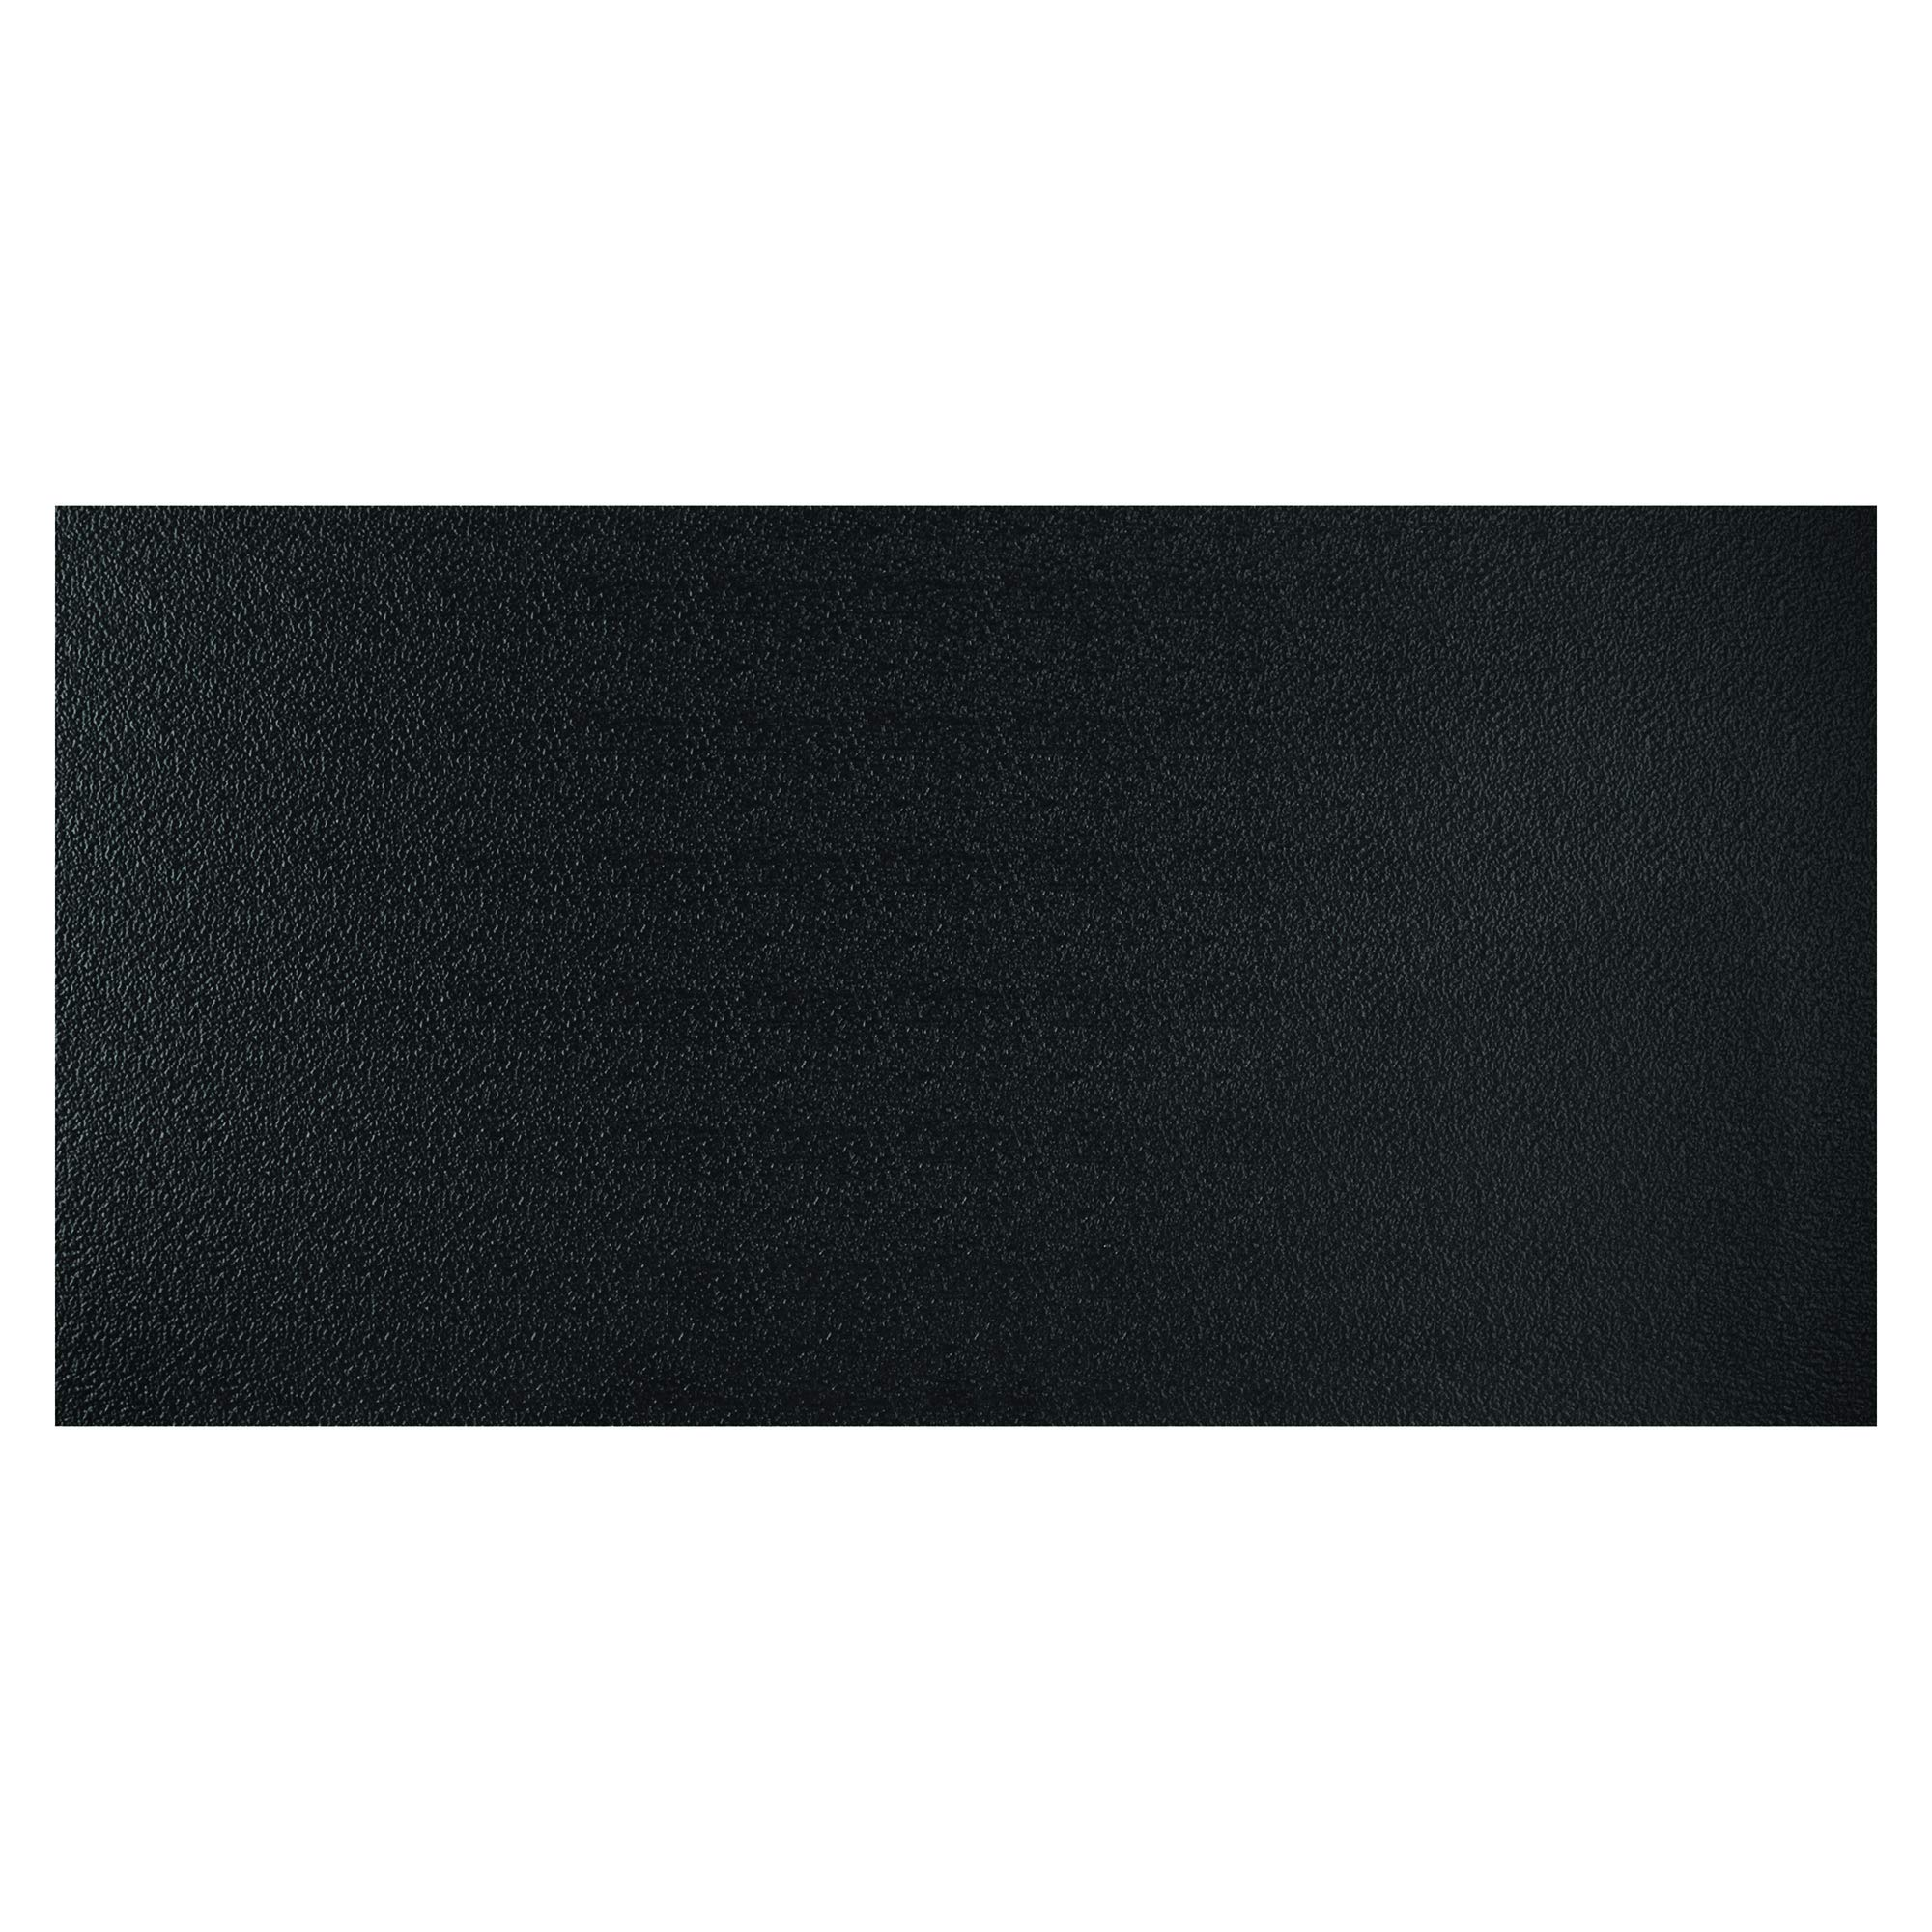 Genesis 2ft x 4ft Stucco Pro Black Ceiling Tiles - Easy Drop-in Installation - Waterproof, Washable and Fire-Rated - High-Grade PVC to Prevent Breakage - Package of 10 Tiles